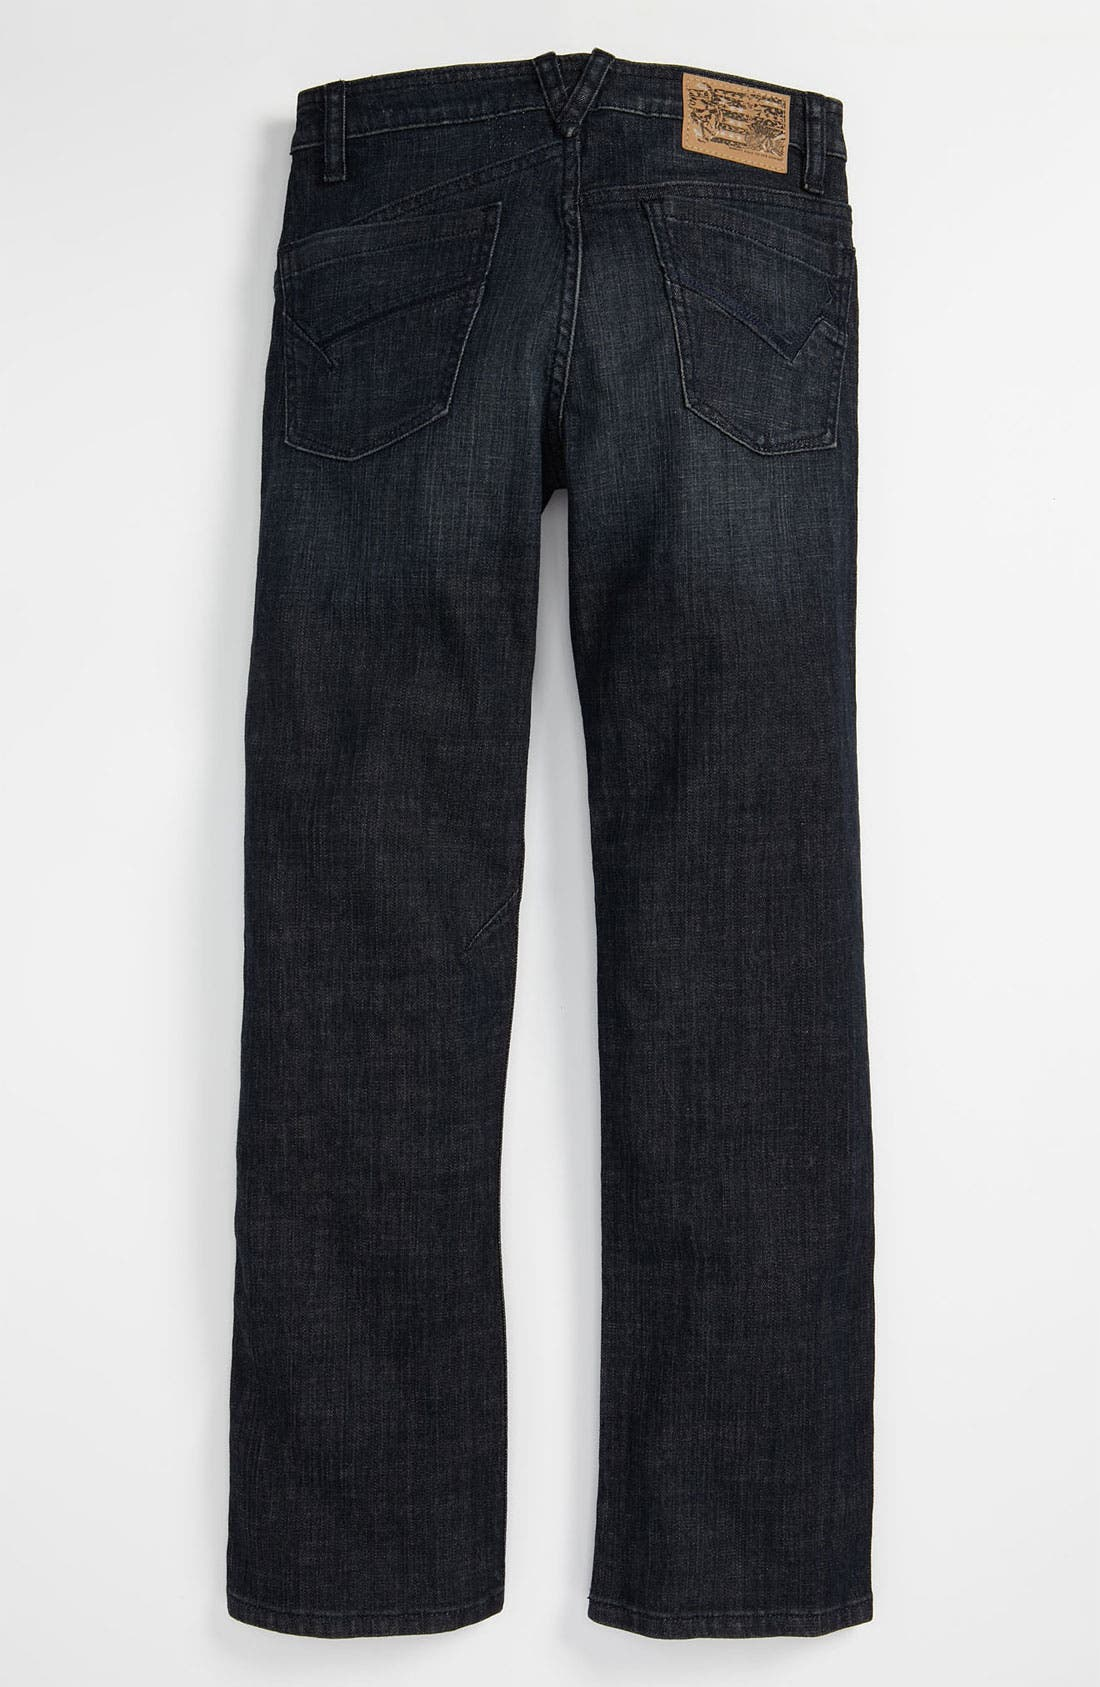 Alternate Image 1 Selected - Volcom 'Enowen' Straight Leg Jeans (Big Boys)